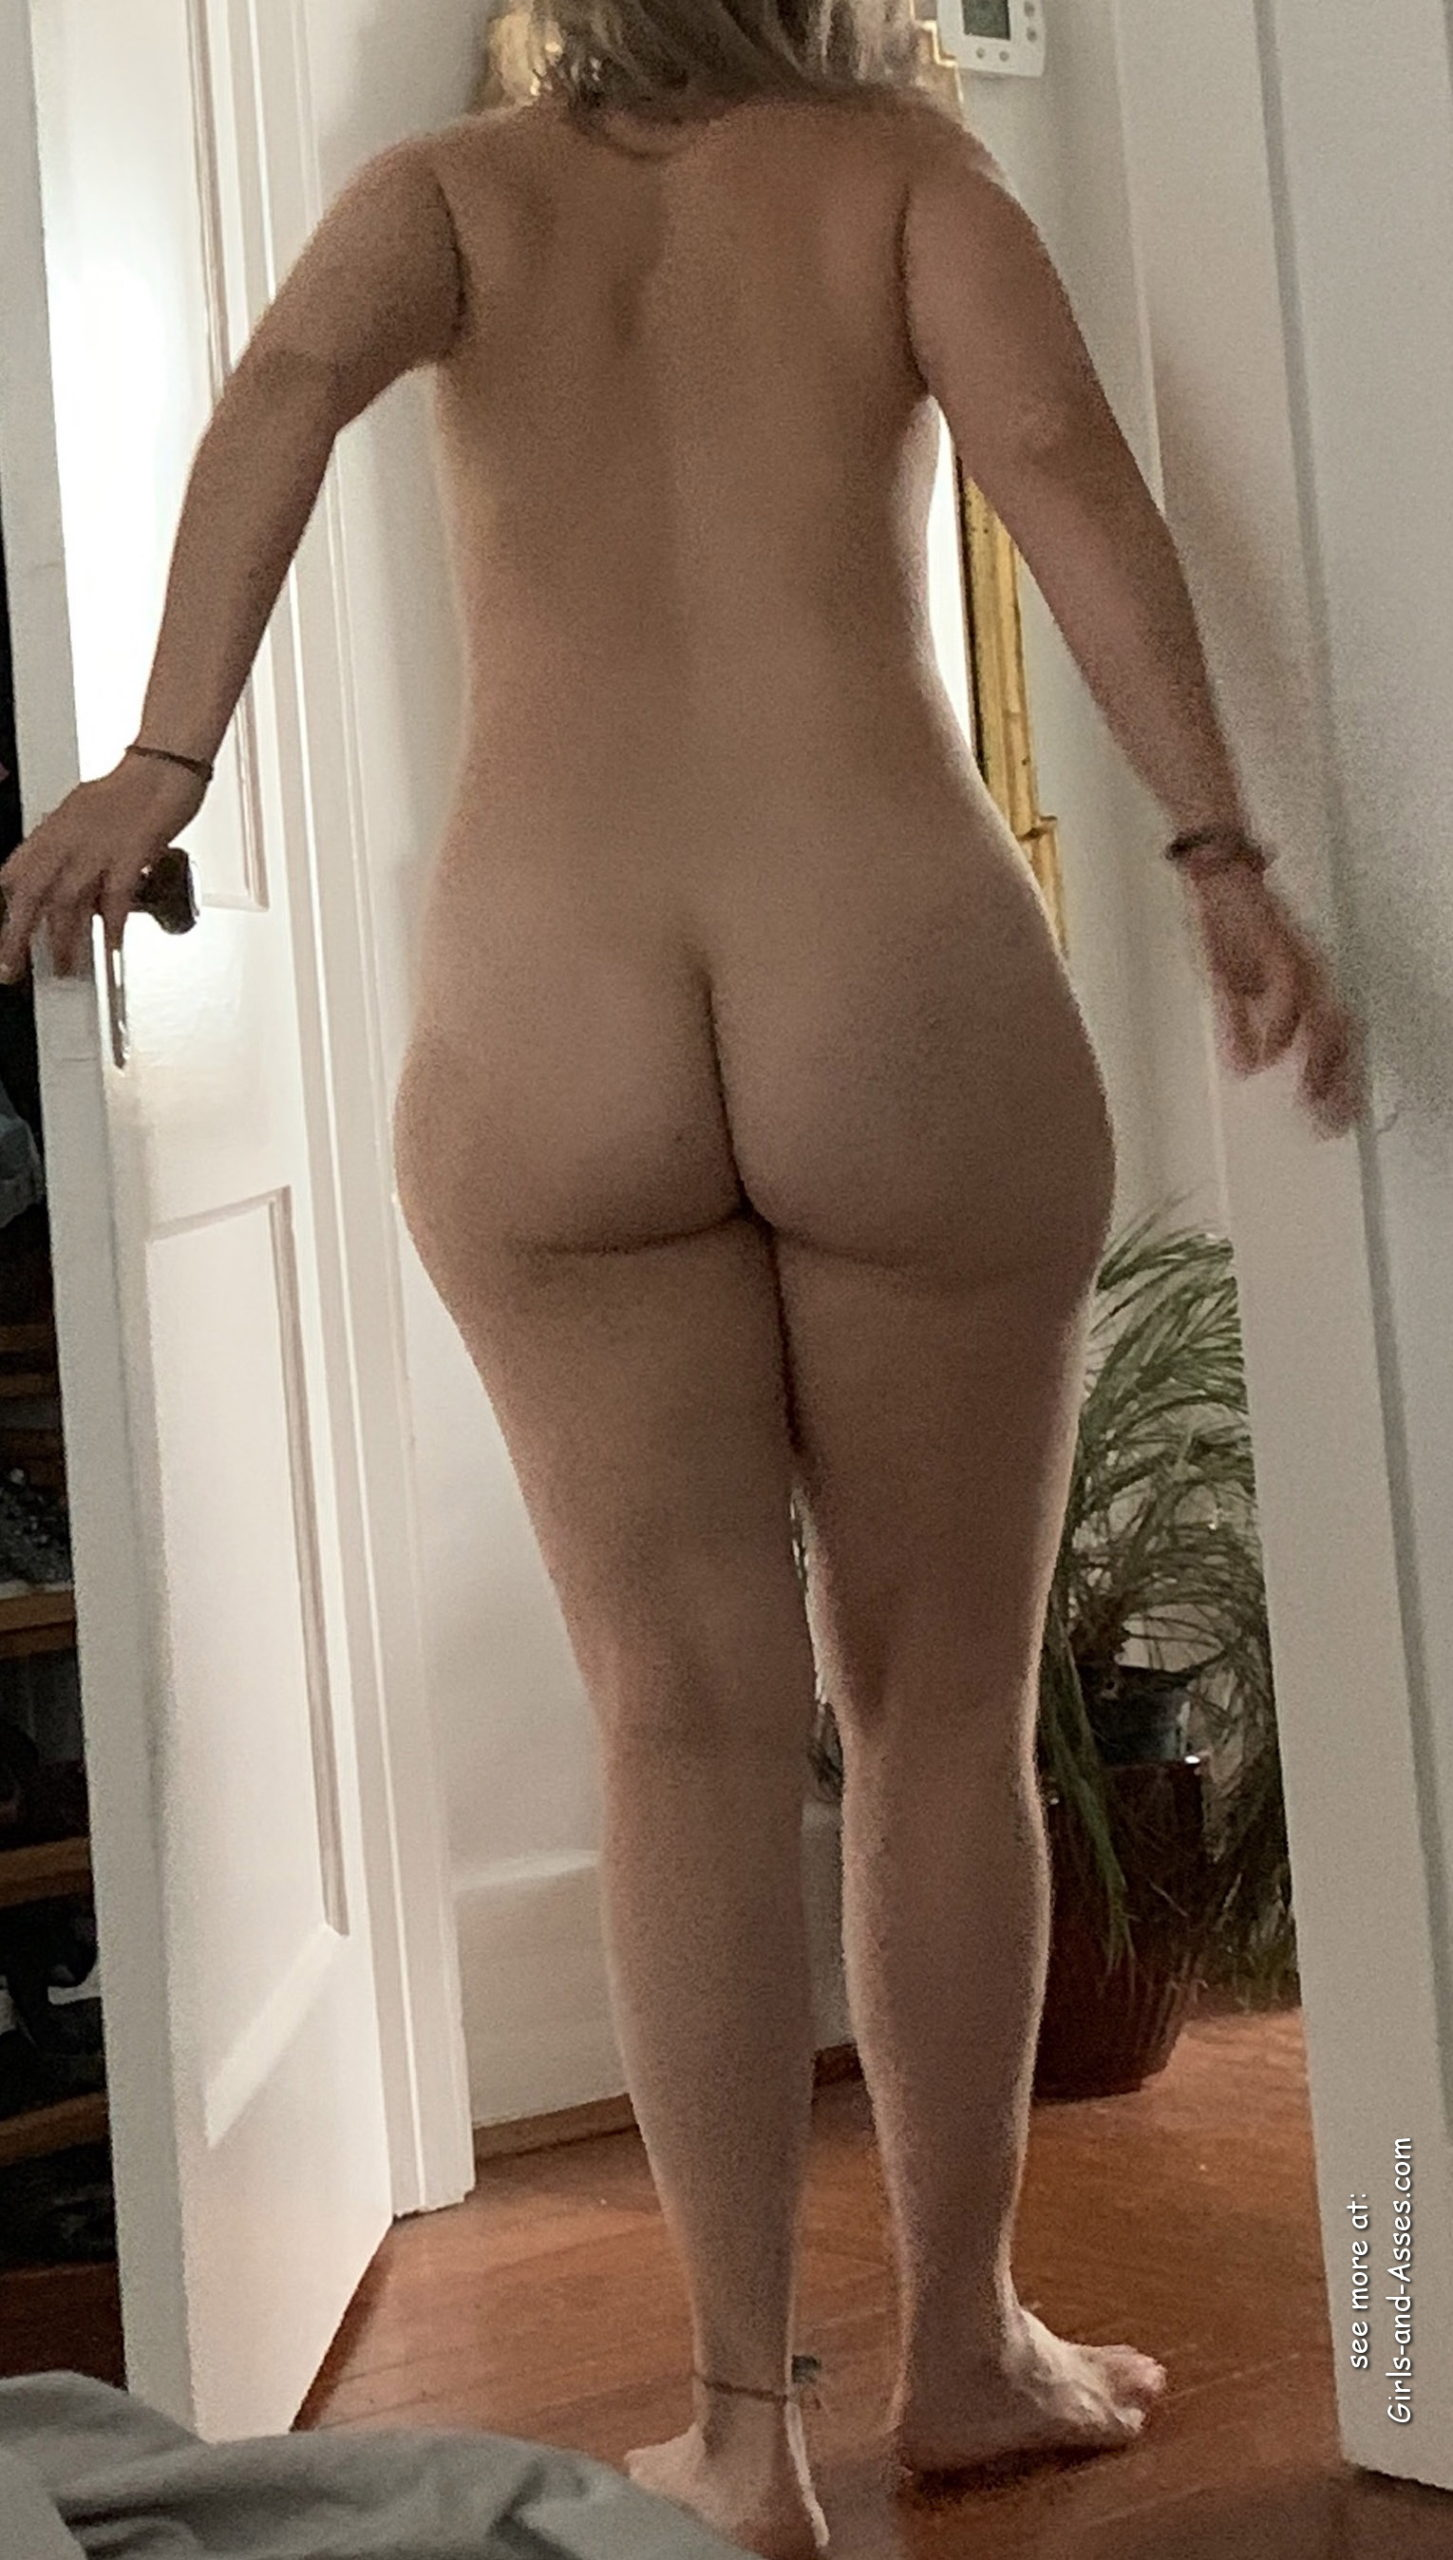 naked milf ass photo 02136 scaled